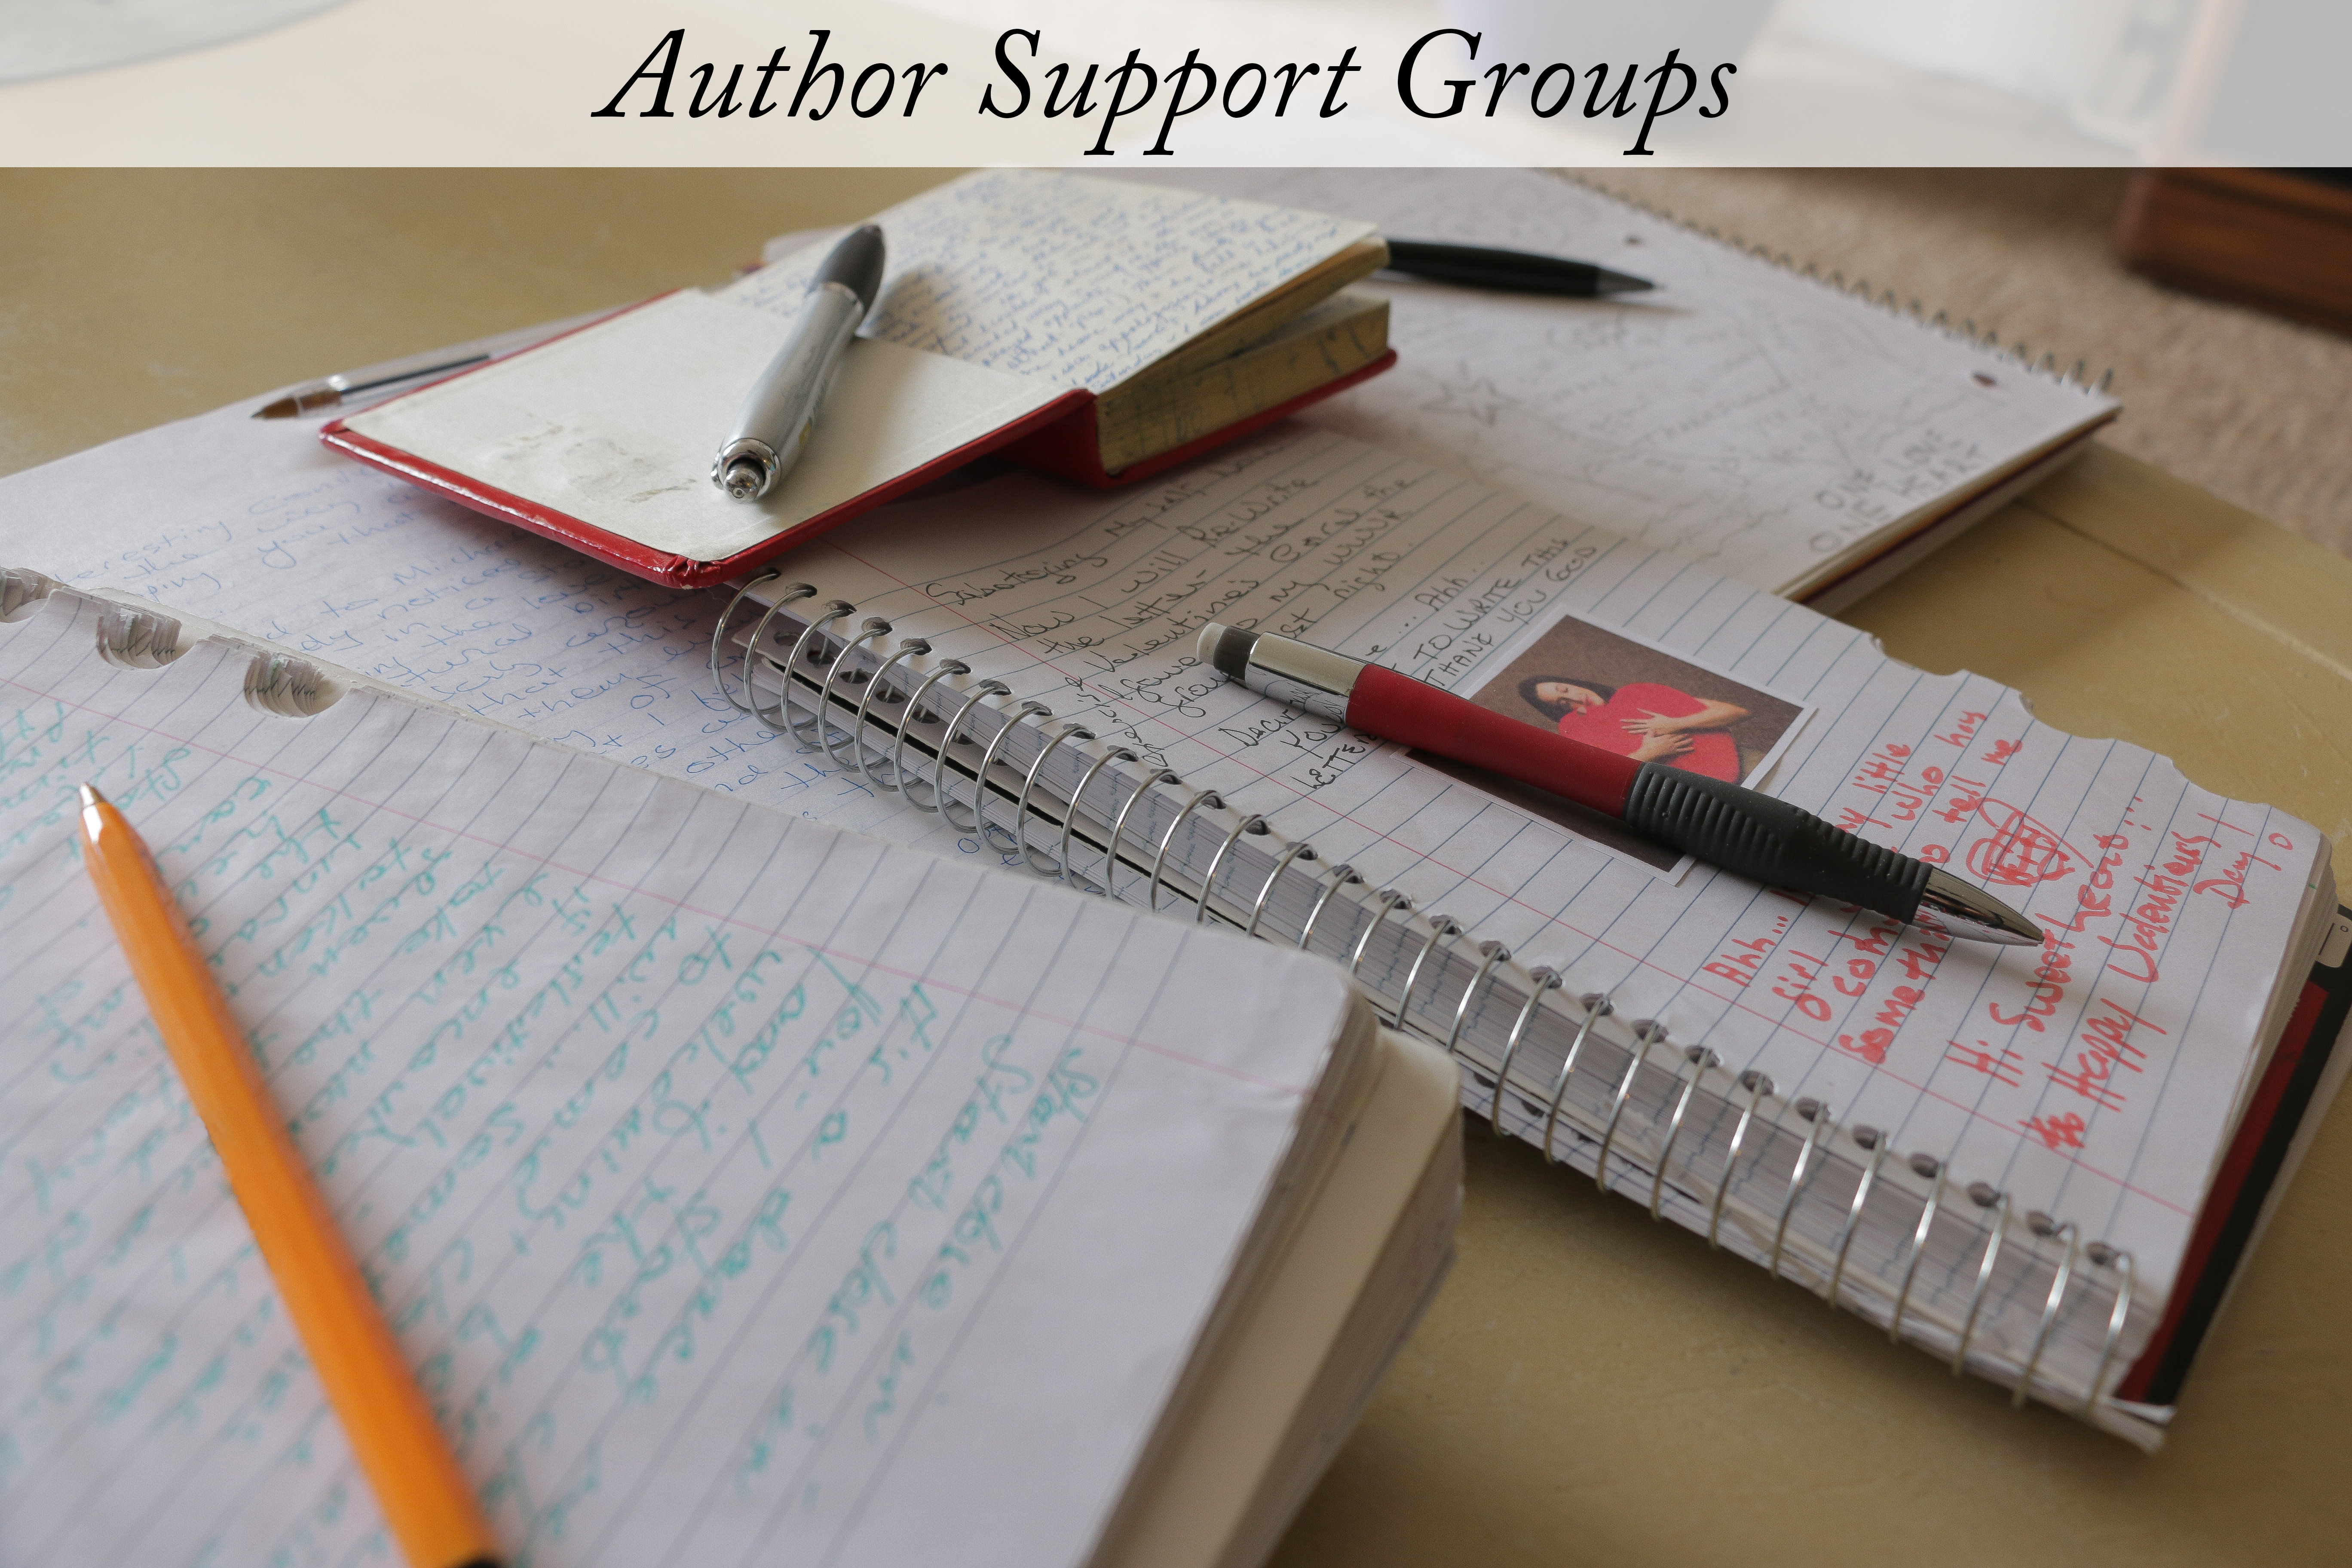 Authors Support Group Faded title